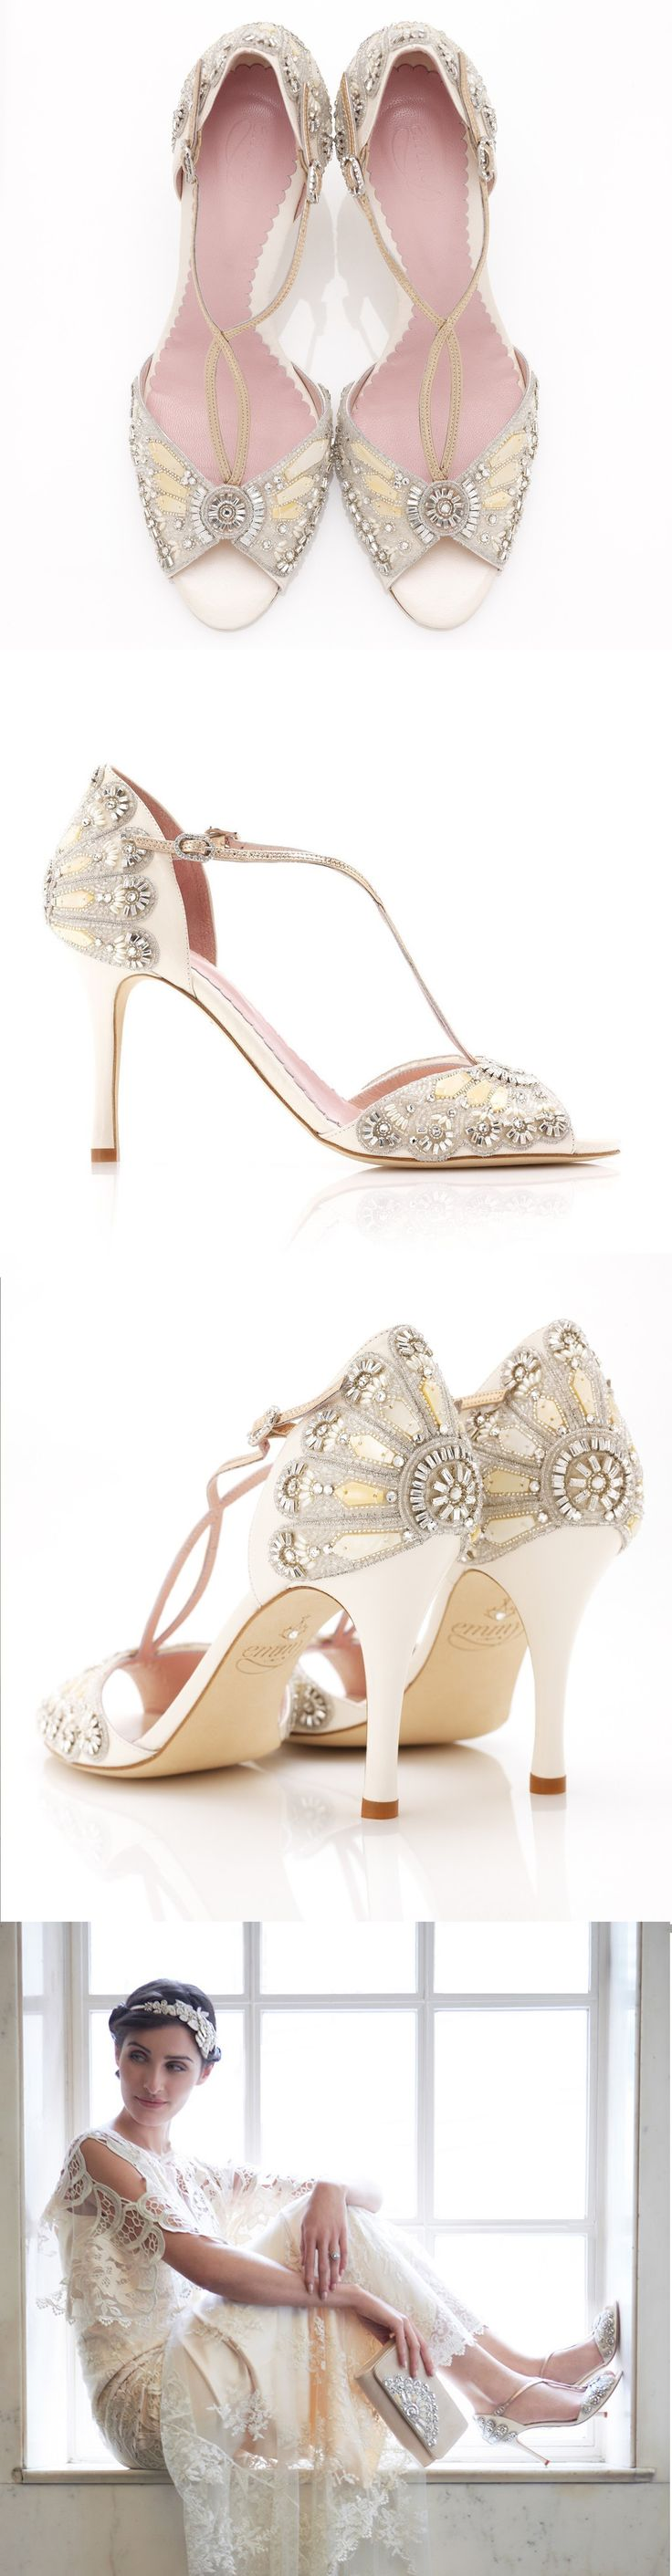 Beautiful vintage bridal sandals embellished in crystal and mother of pearl shell embroidery.